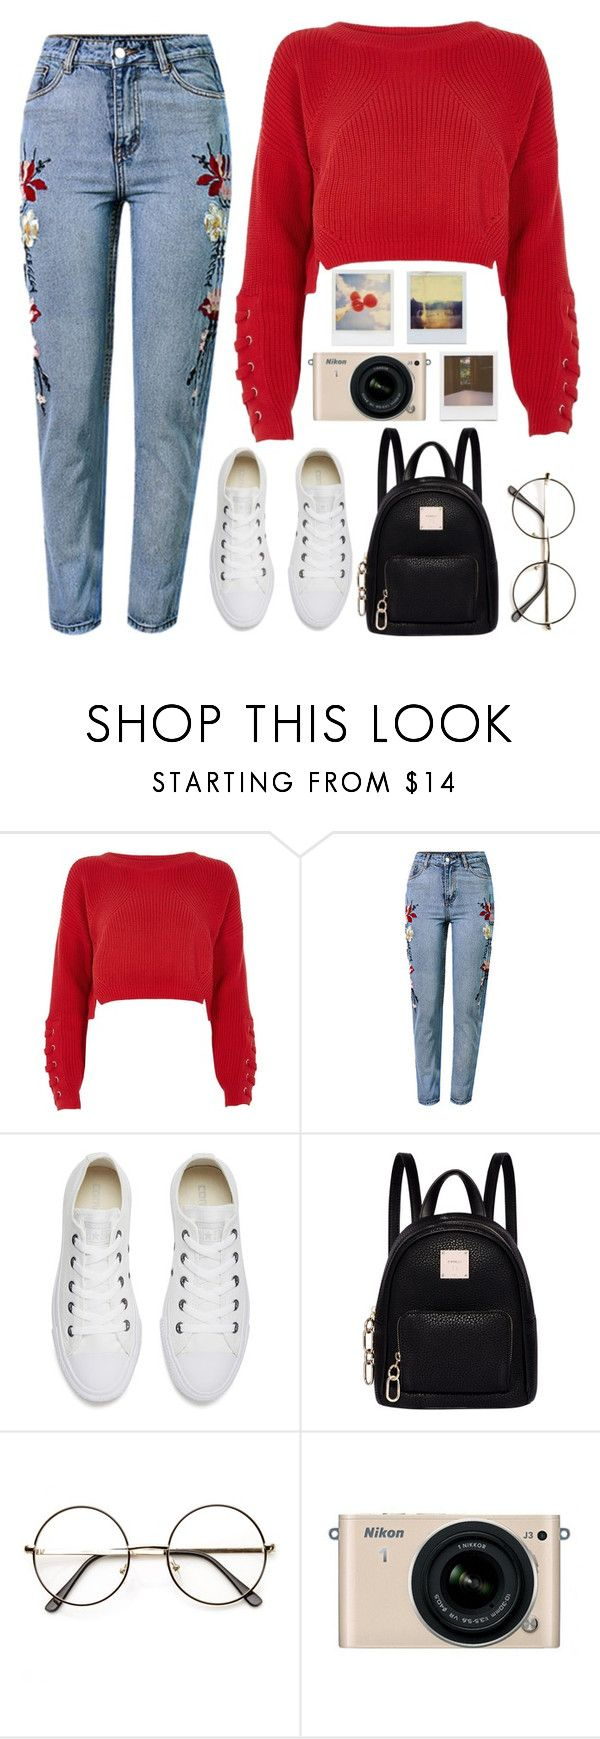 """""""Untitled #986"""" by dolrebeca ❤ liked on Polyvore featuring River Island, WithChic, Converse, Fiorelli, Nikon, Impossible Project and Polaroid"""